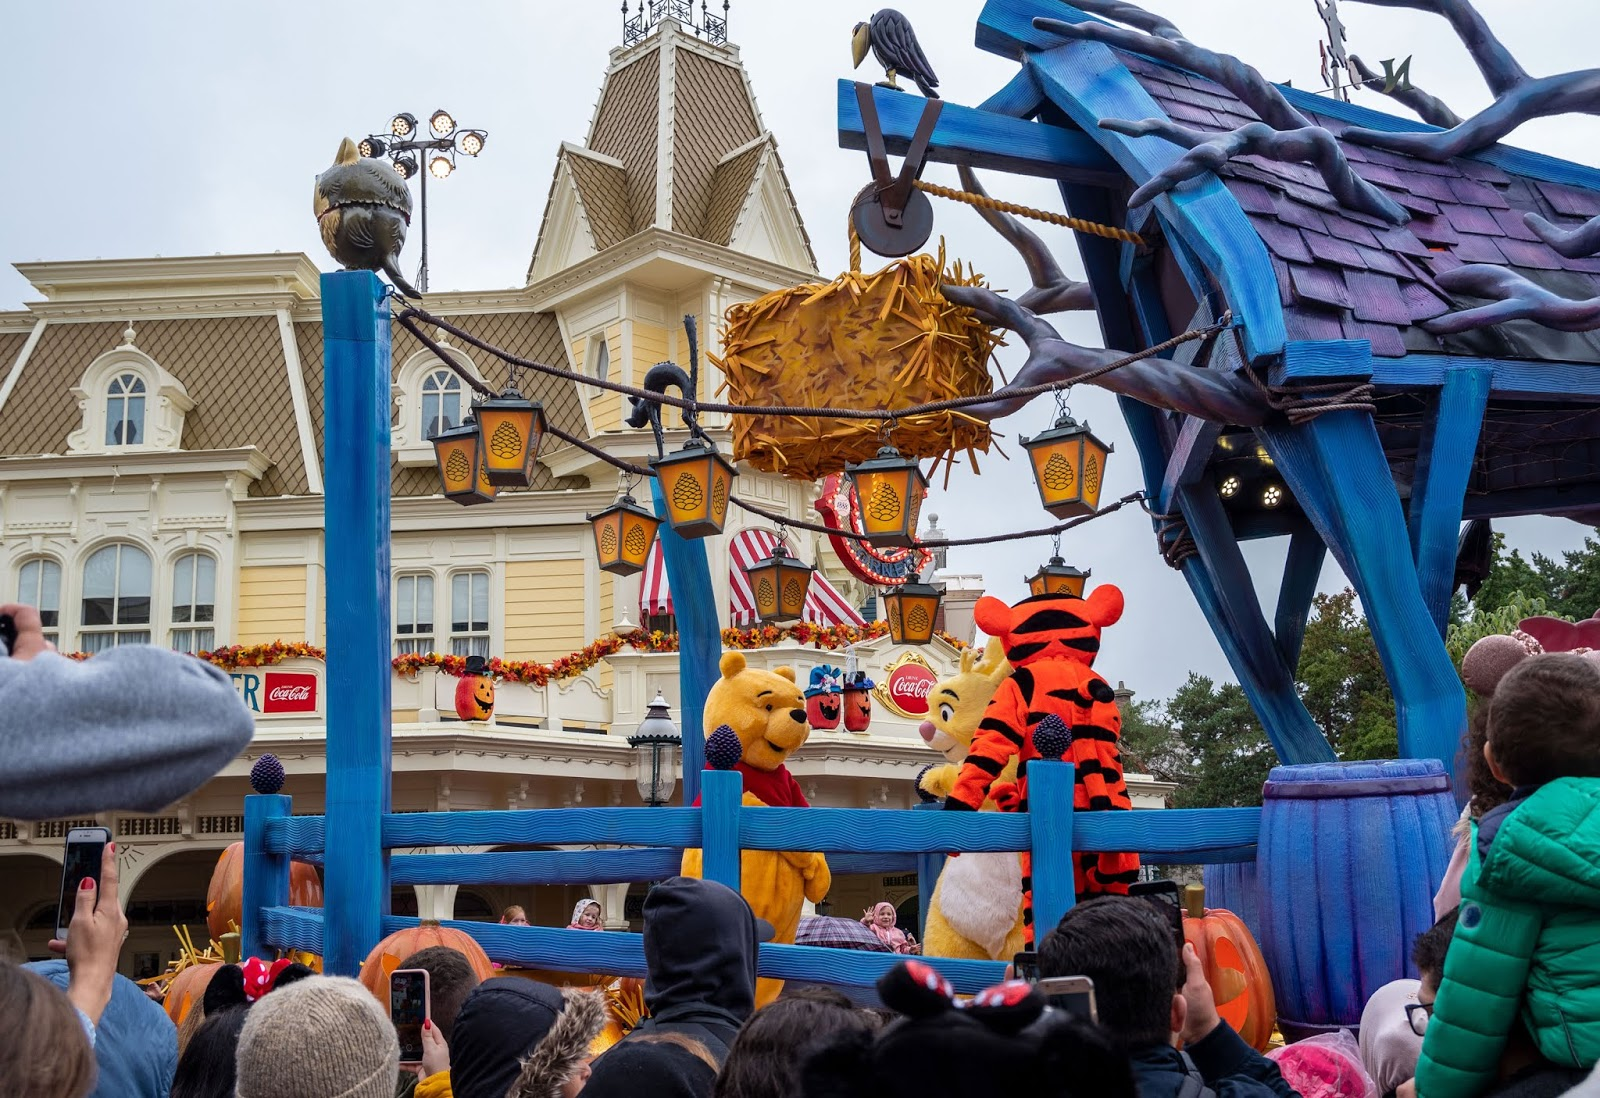 Winnie the Pooh characters in the Halloween parade at Disneyland Paris